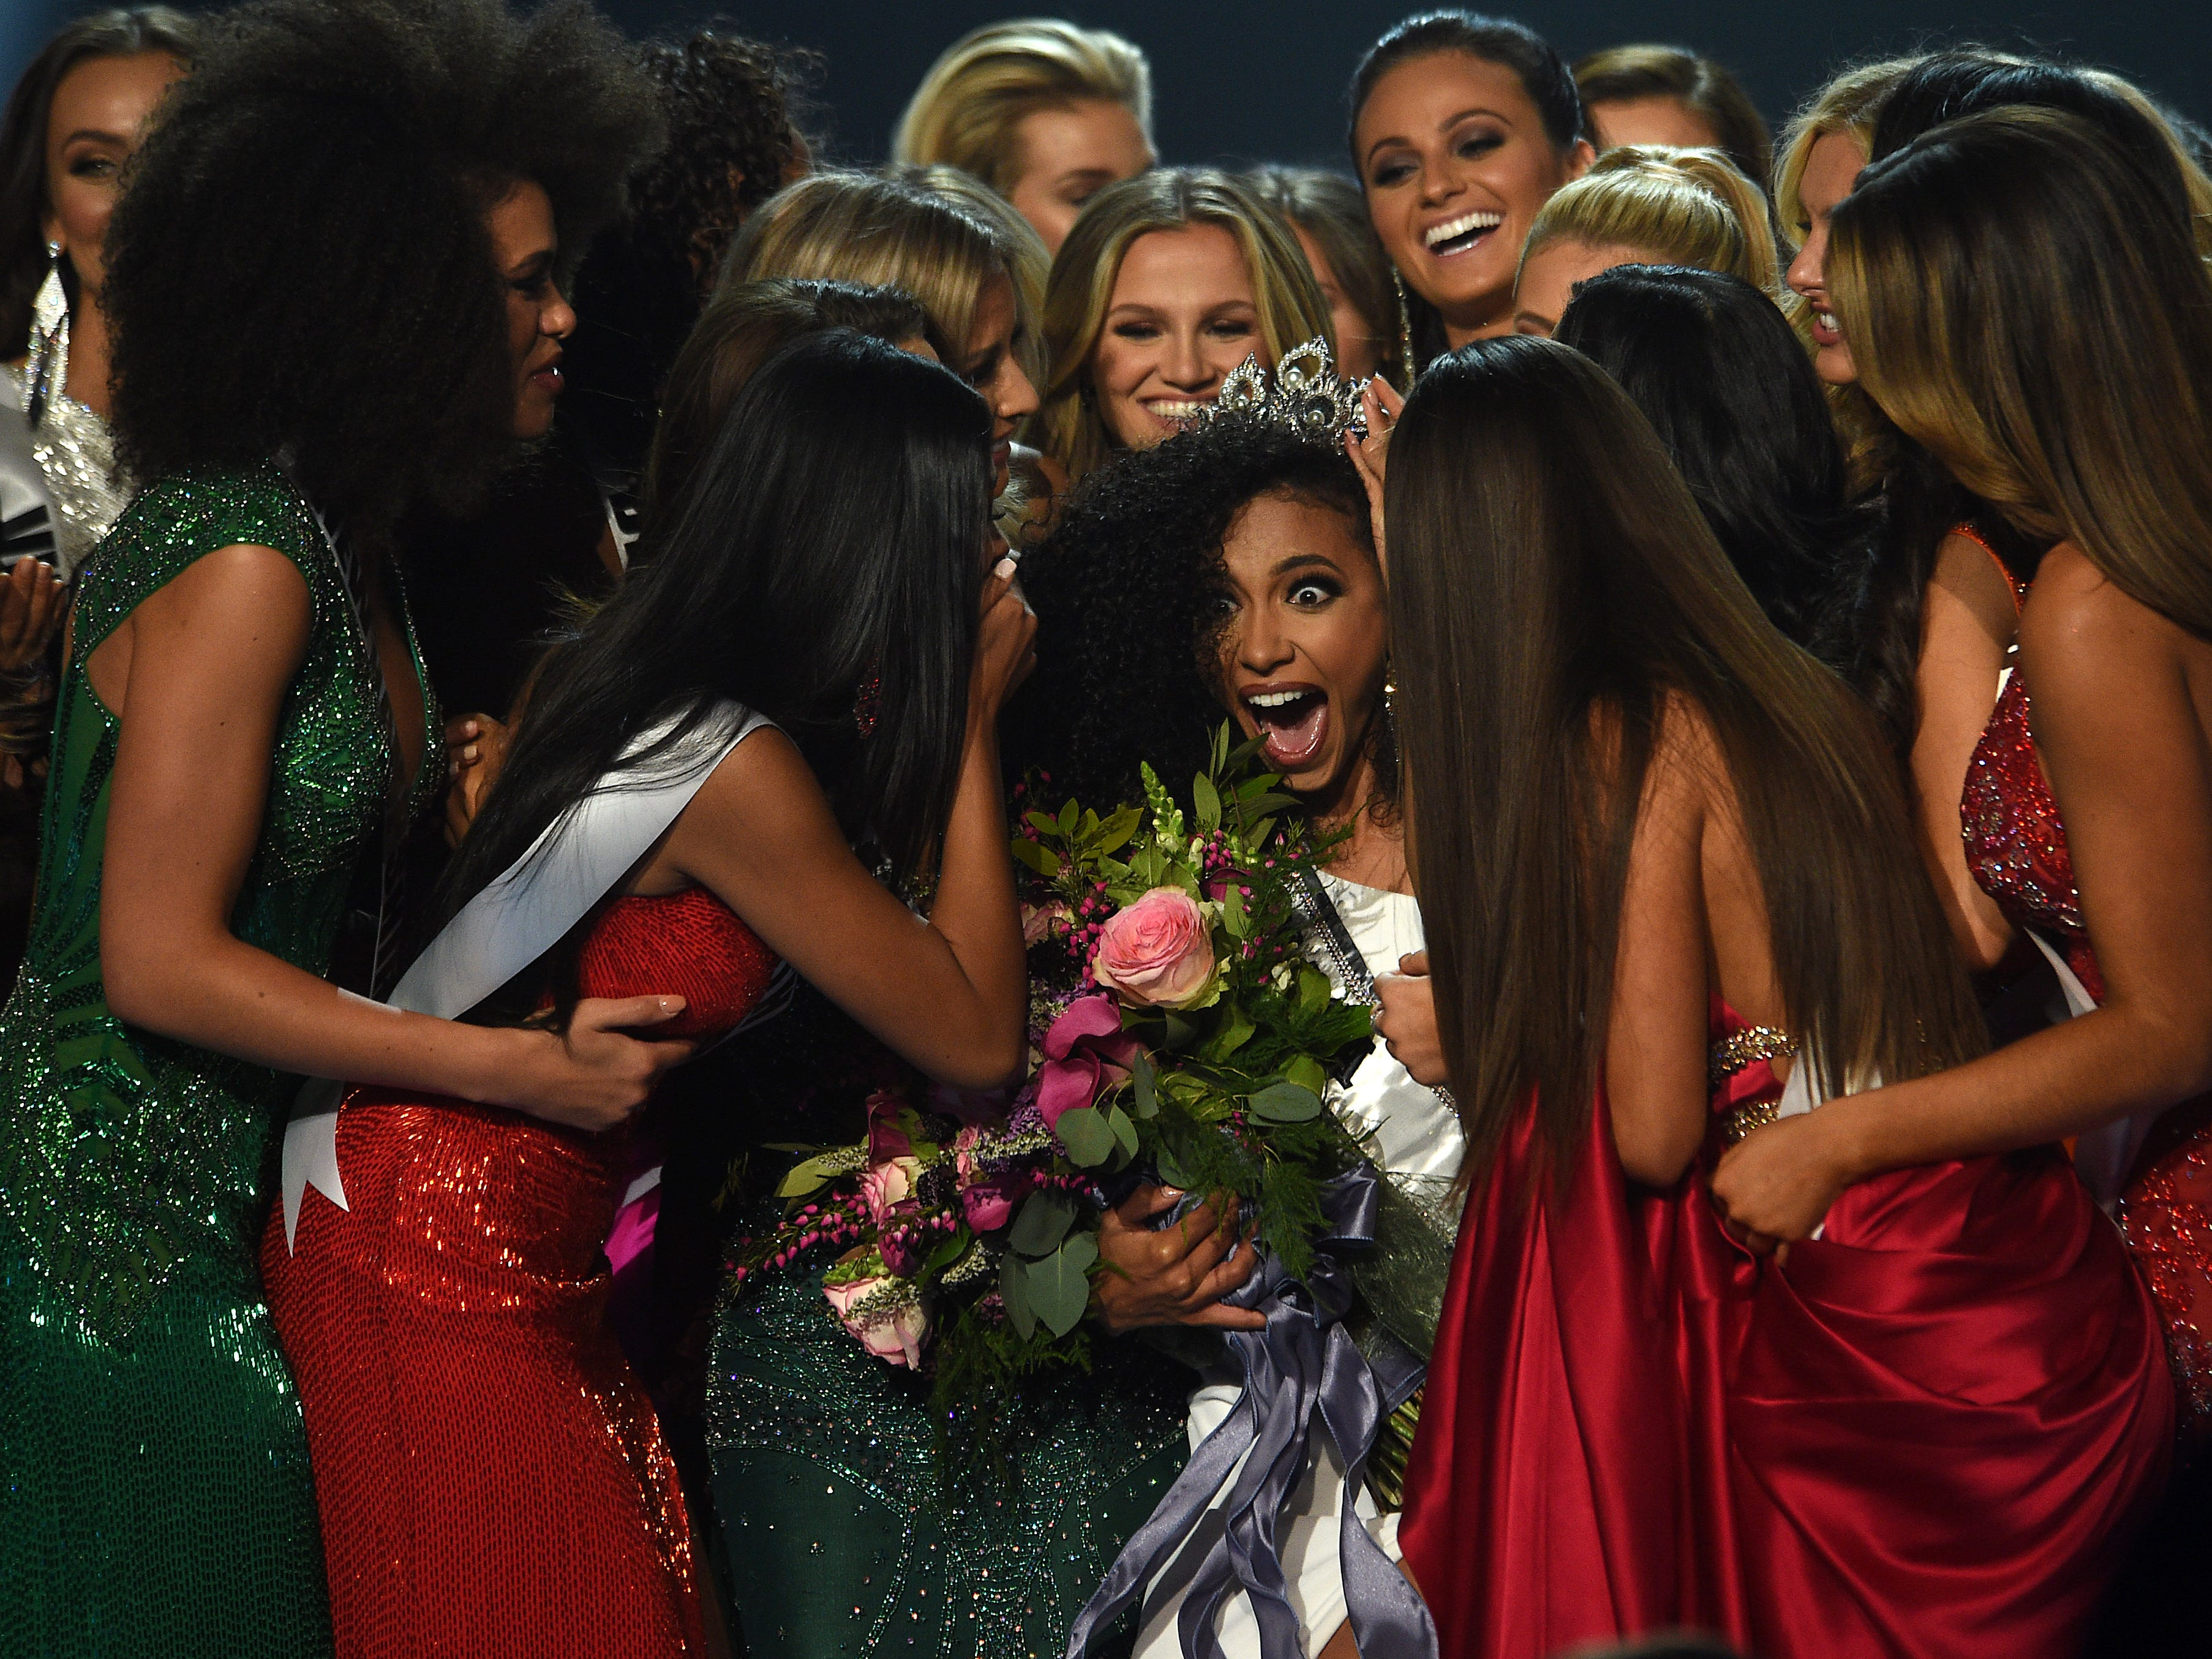 Miss North Carolina Cheslie Kryst, middle, gets mobbed by her fellow contestants after winning the 2019 Miss USA final competition in the Grand Theatre in the Grand Sierra Resort in Reno on May 2, 2019.